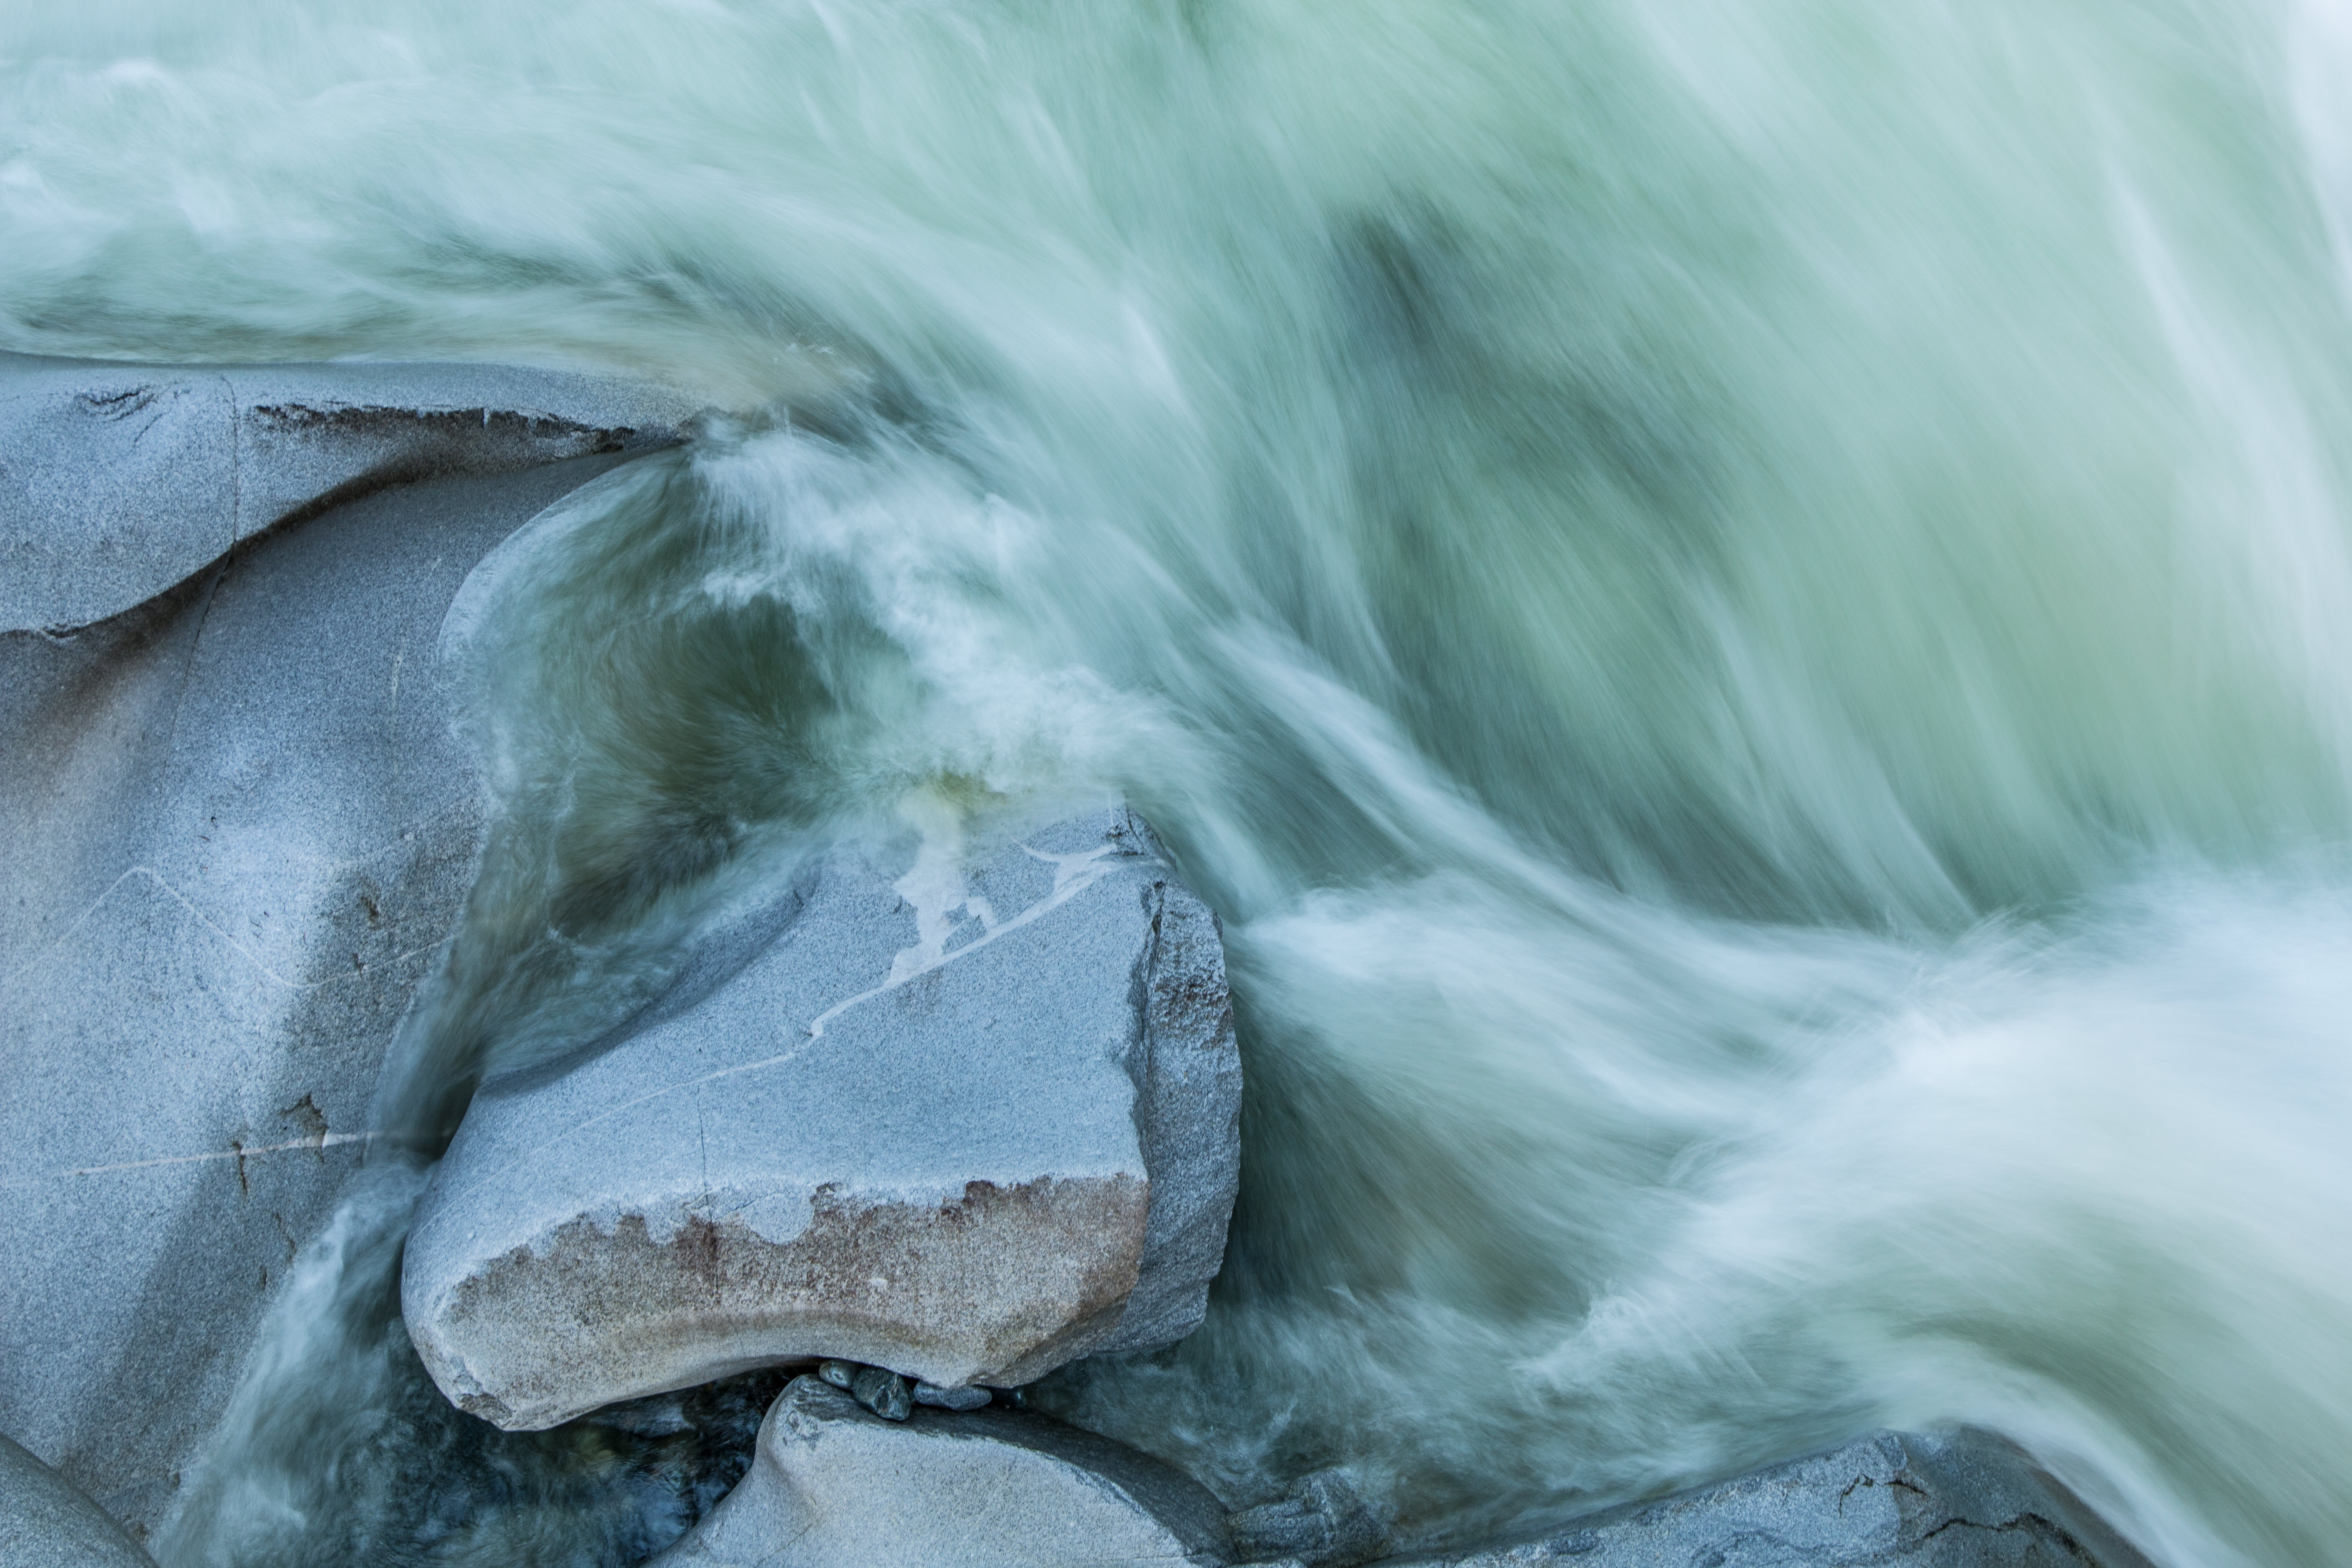 Poll – Have you ever shot water at long exposures?